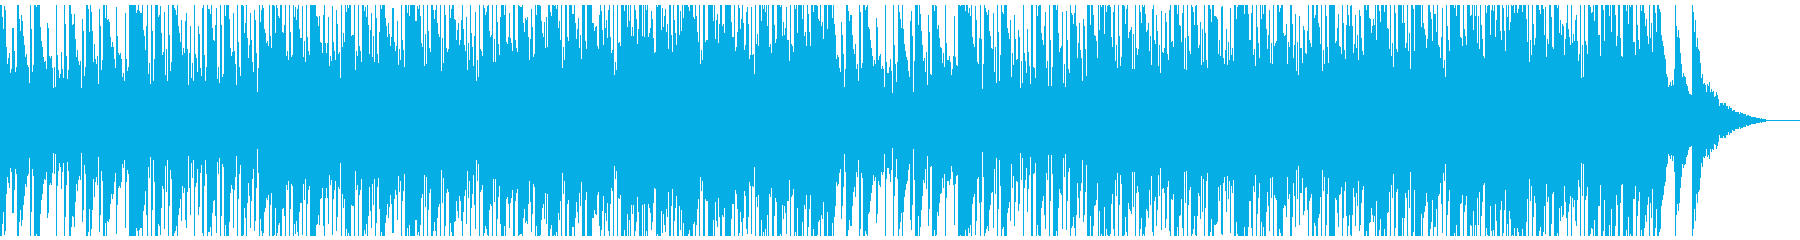 Cool piano house / corporate VP · CM etc's reproduced waveform